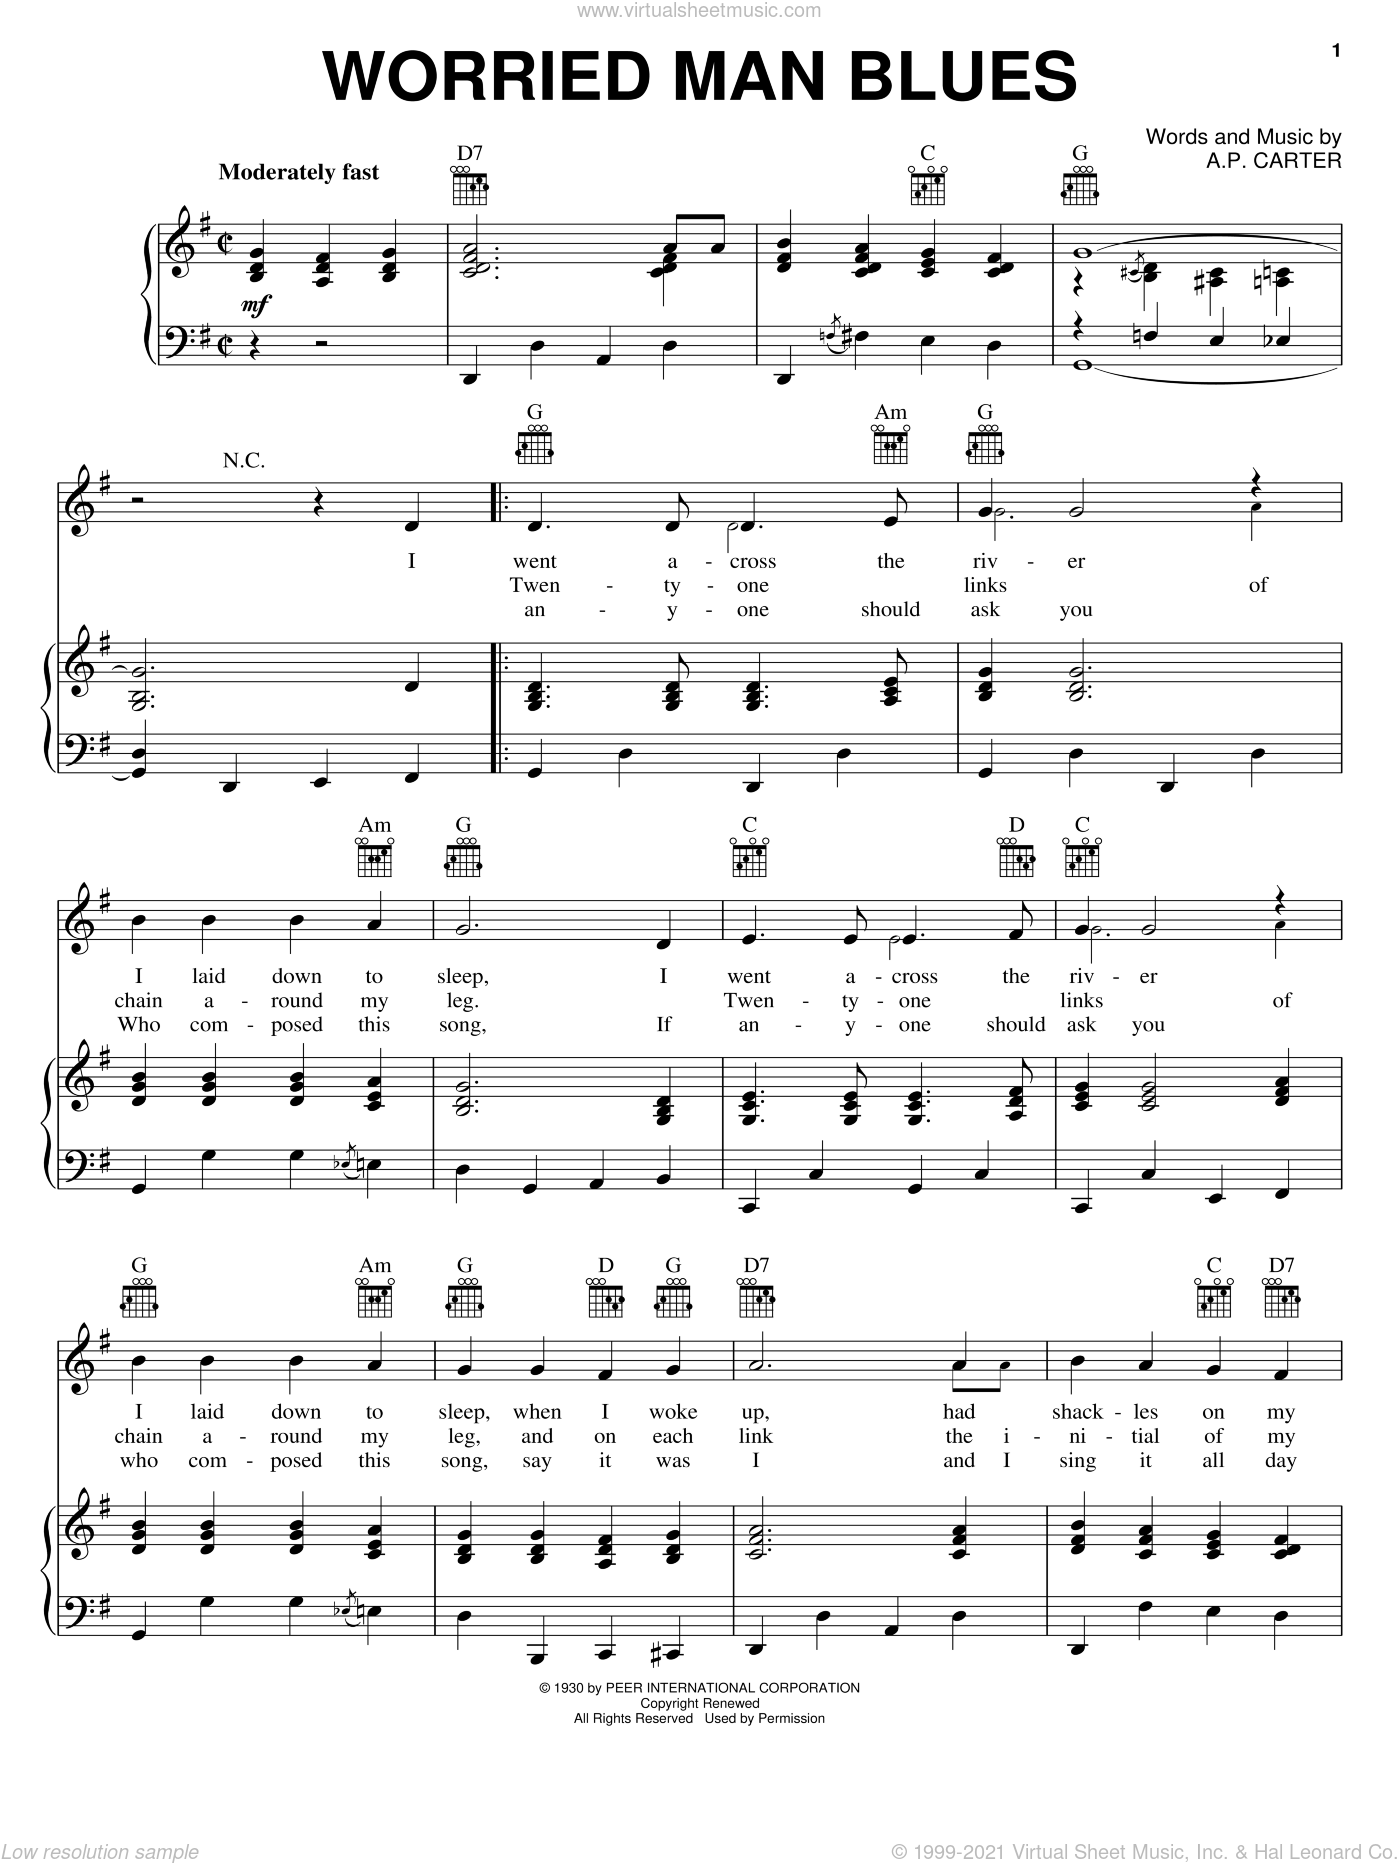 Worried Man Blues sheet music for voice, piano or guitar by Sara Carter